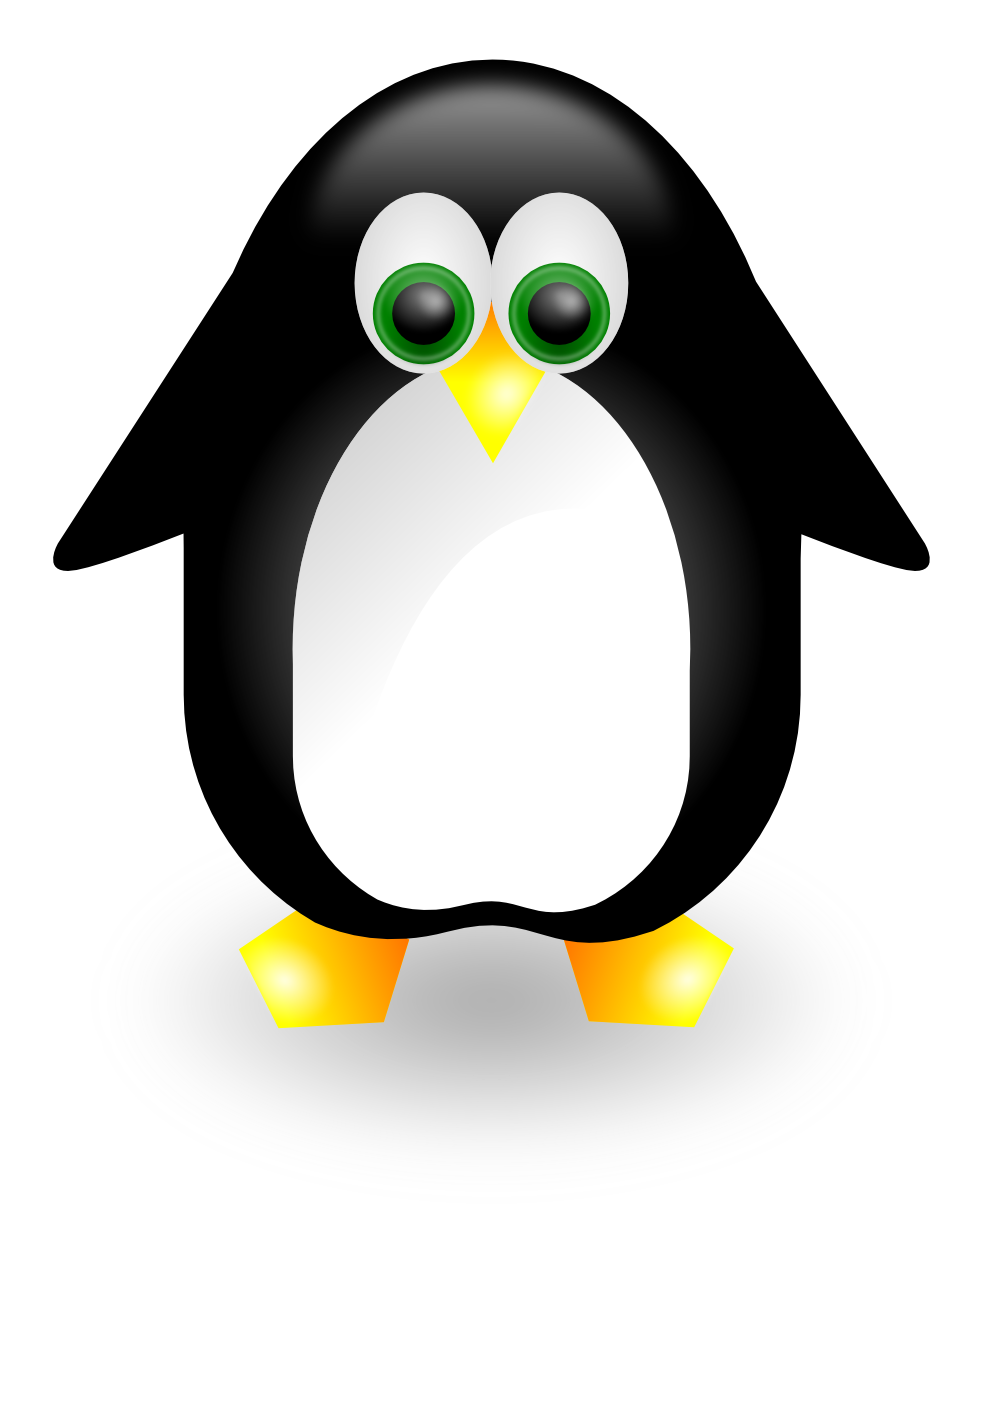 Linux clipart #9, Download drawings